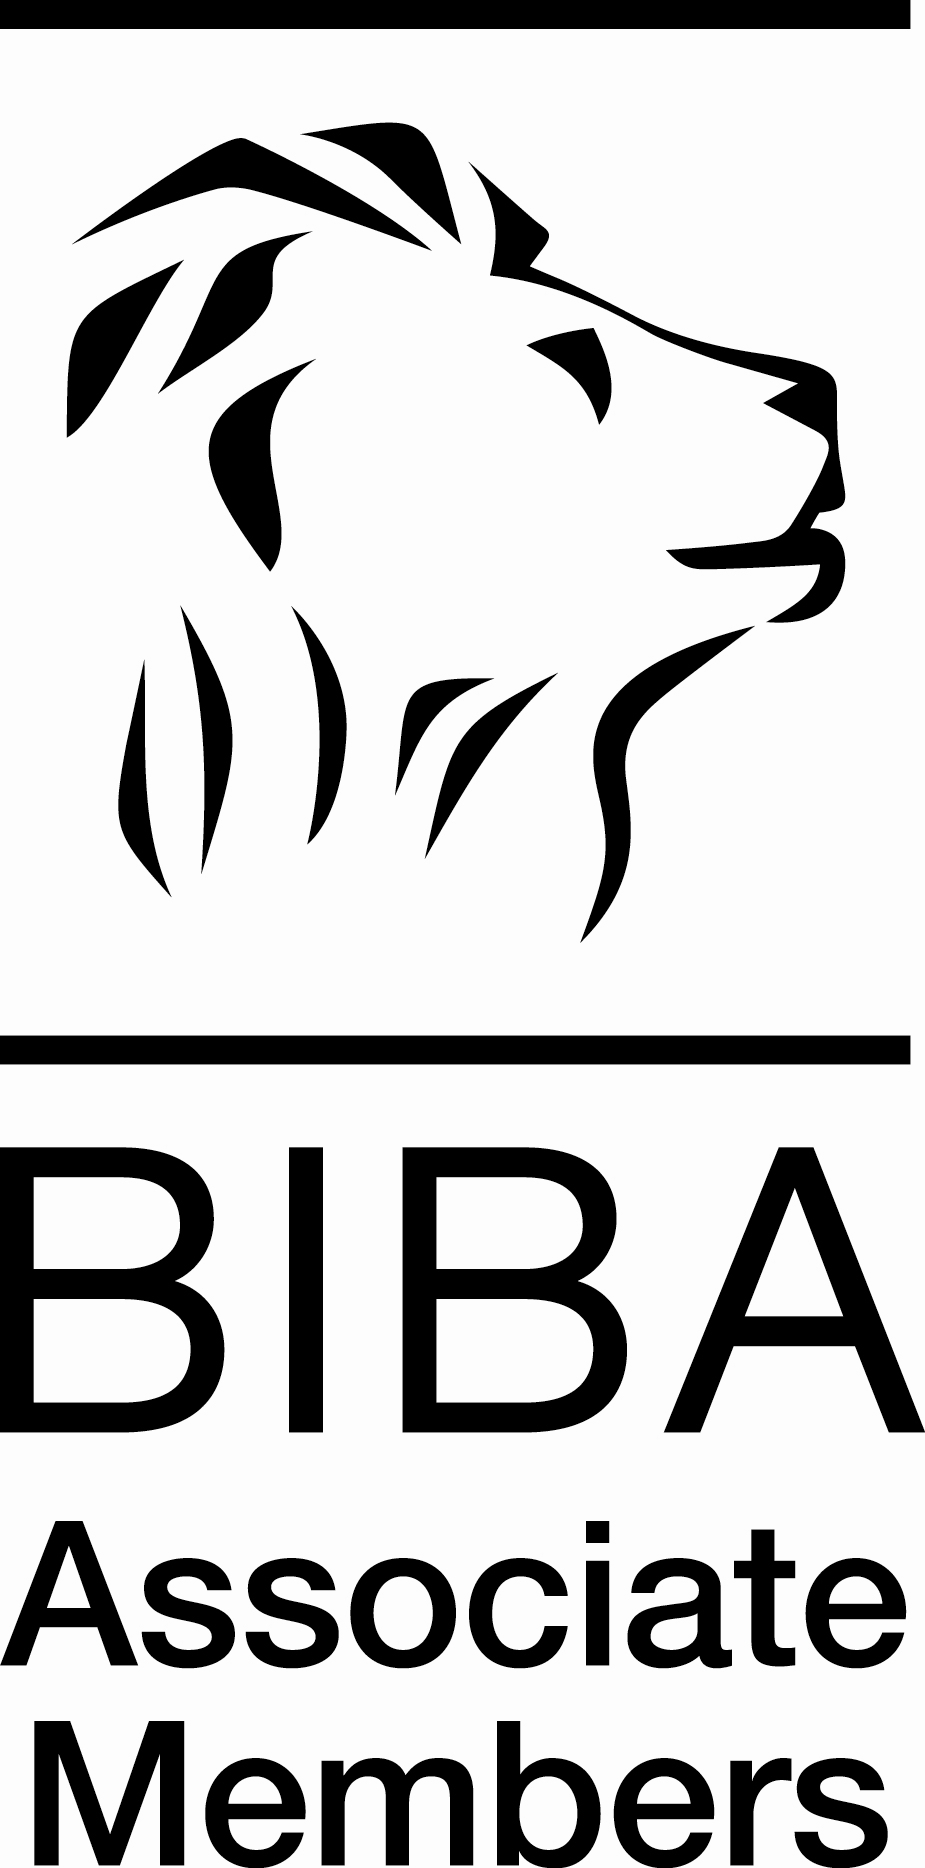 Morgan Clark - Associate BIBA members